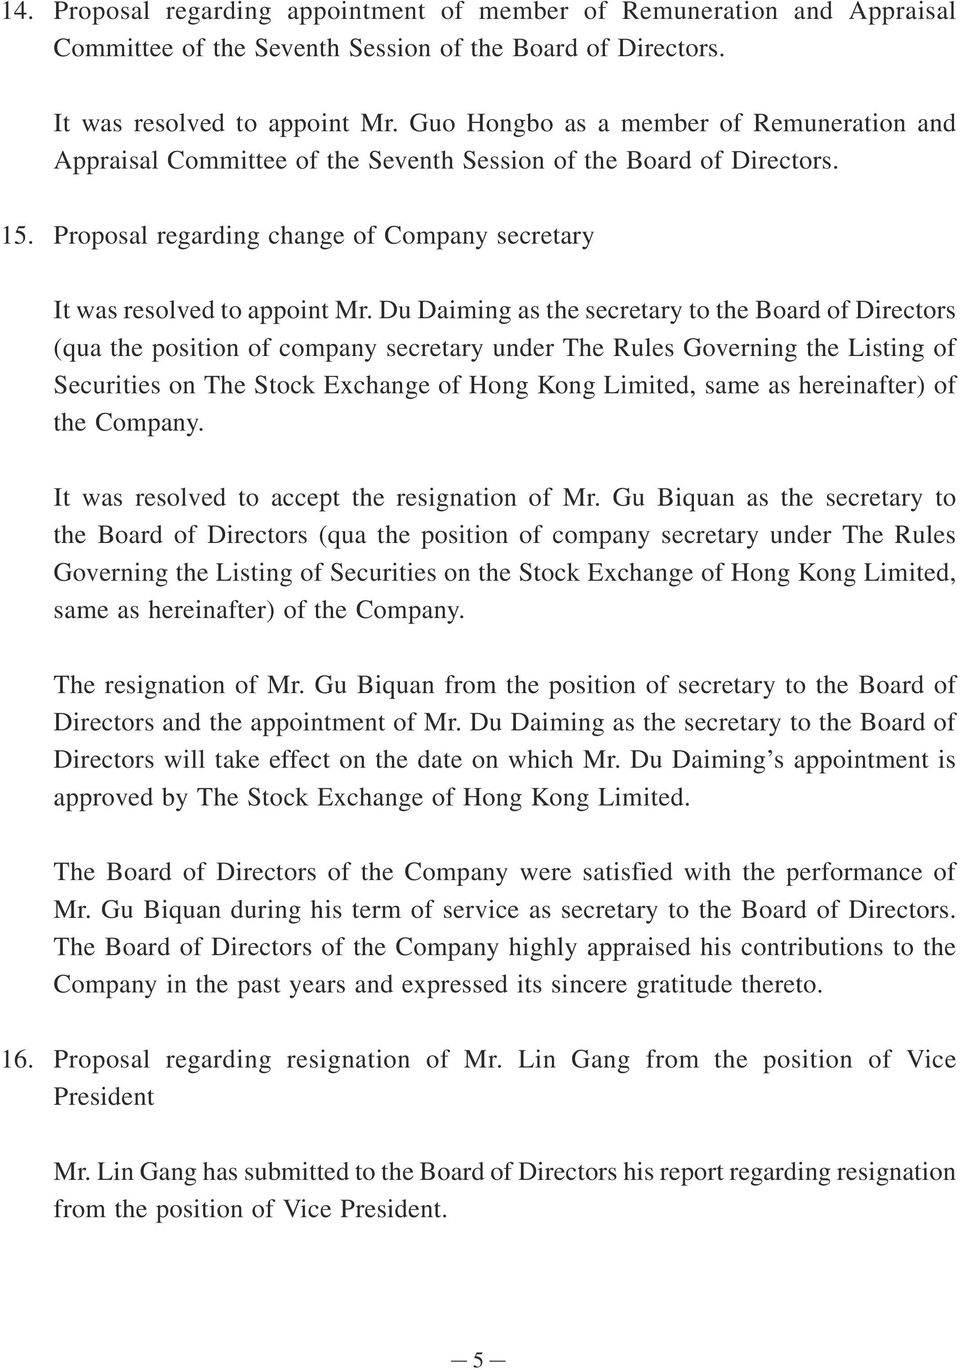 Du Daiming as the secretary to the Board of Directors (qua the position of company secretary under The Rules Governing the Listing of Securities on The Stock Exchange of Hong Kong Limited, same as